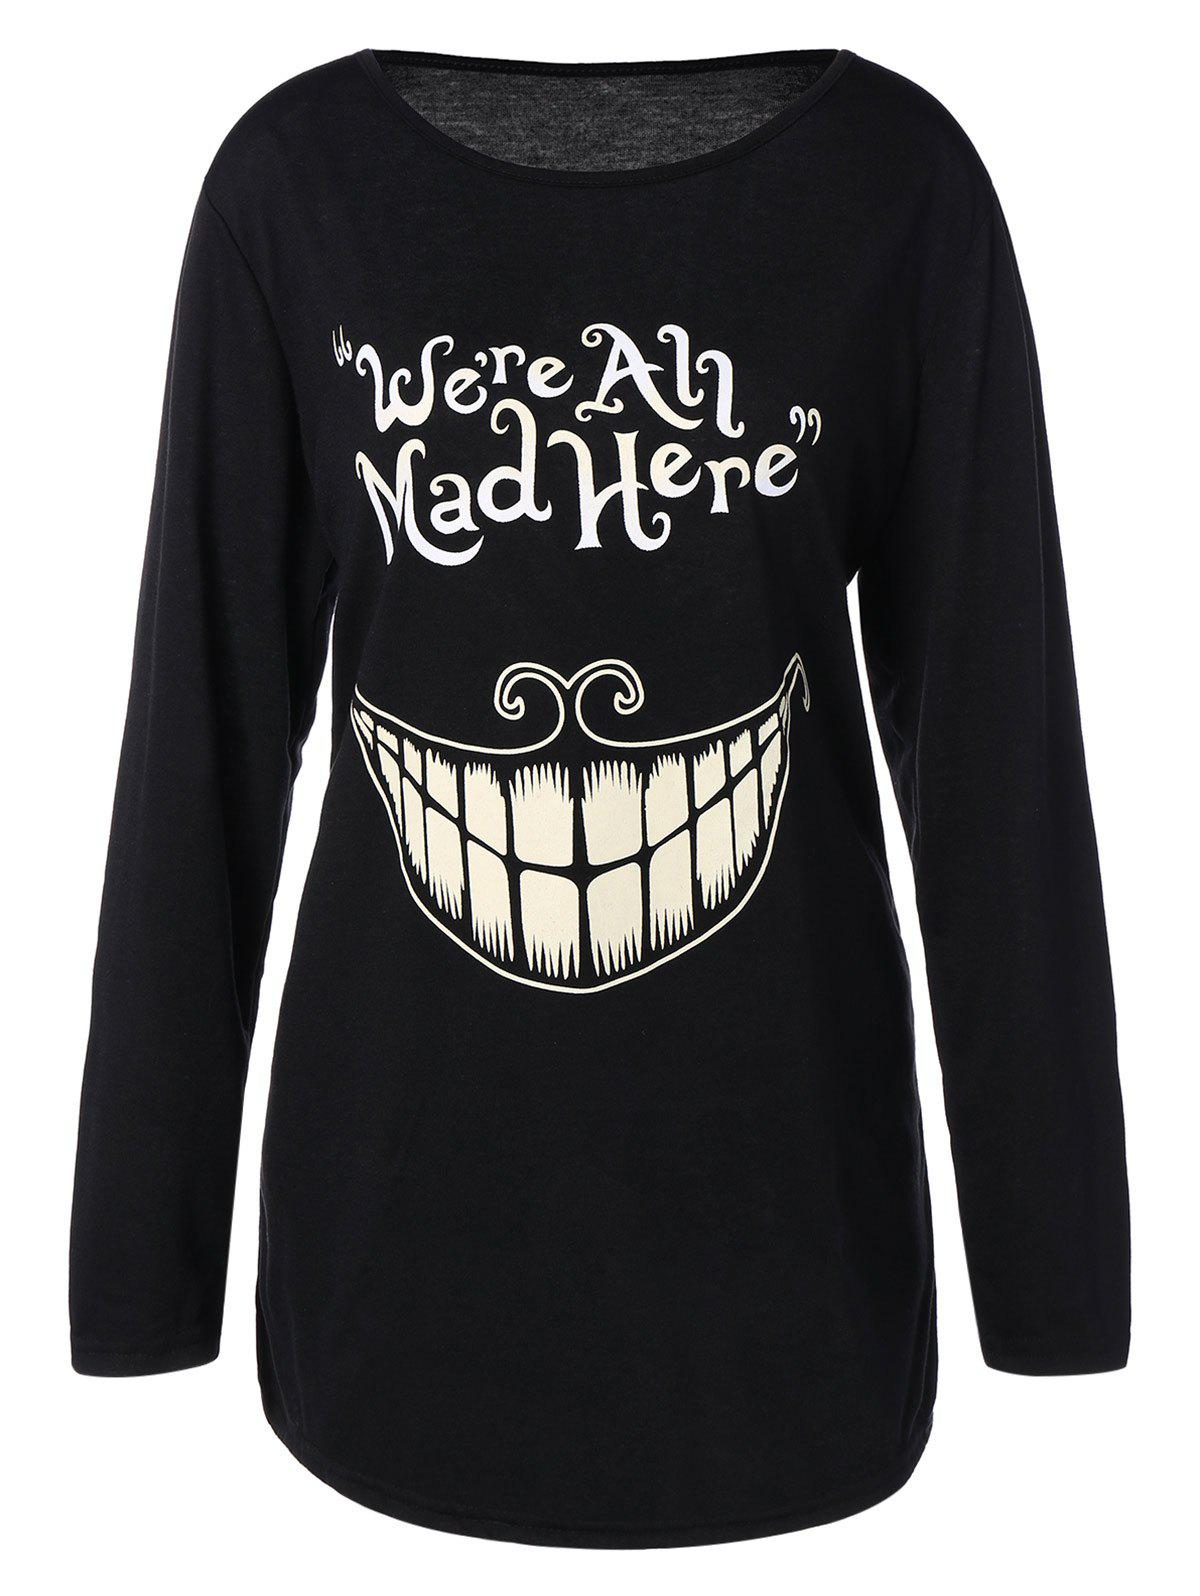 Plus Size Teeth and Letter Print T-shirtWOMEN<br><br>Size: L; Color: BLACK; Material: Polyester,Spandex; Shirt Length: Long; Sleeve Length: Full; Collar: Jewel Neck; Style: Casual; Season: Fall,Spring; Pattern Type: Letter; Weight: 0.2510kg; Package Contents: 1 x T-Shirt;